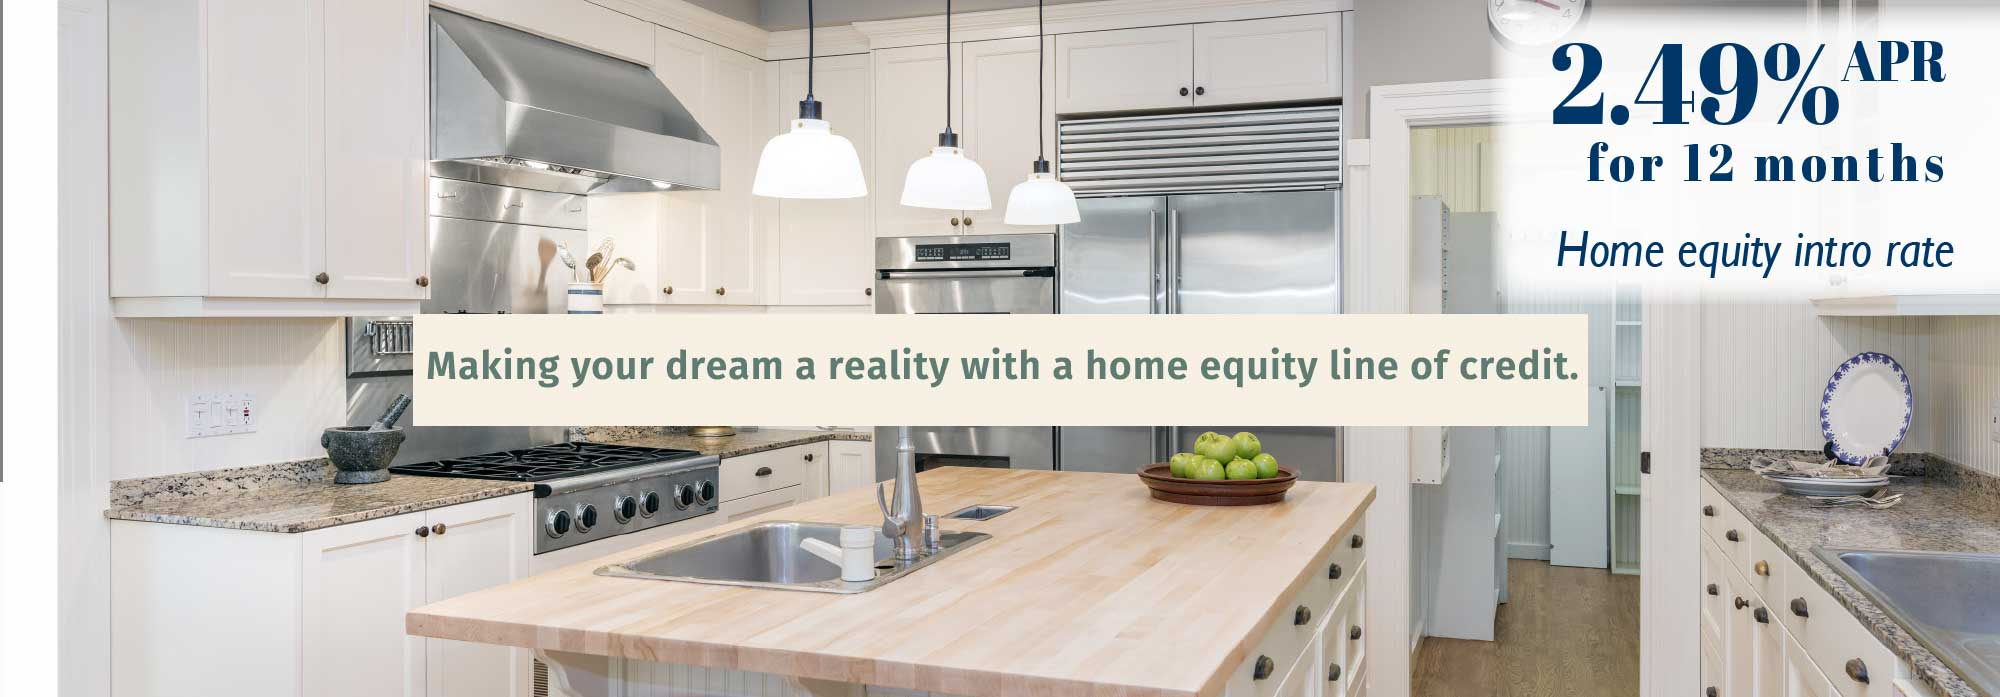 Making your dream a reality with a home equity line of credit. 2.49% APR for 12 months. Home equity intro rate